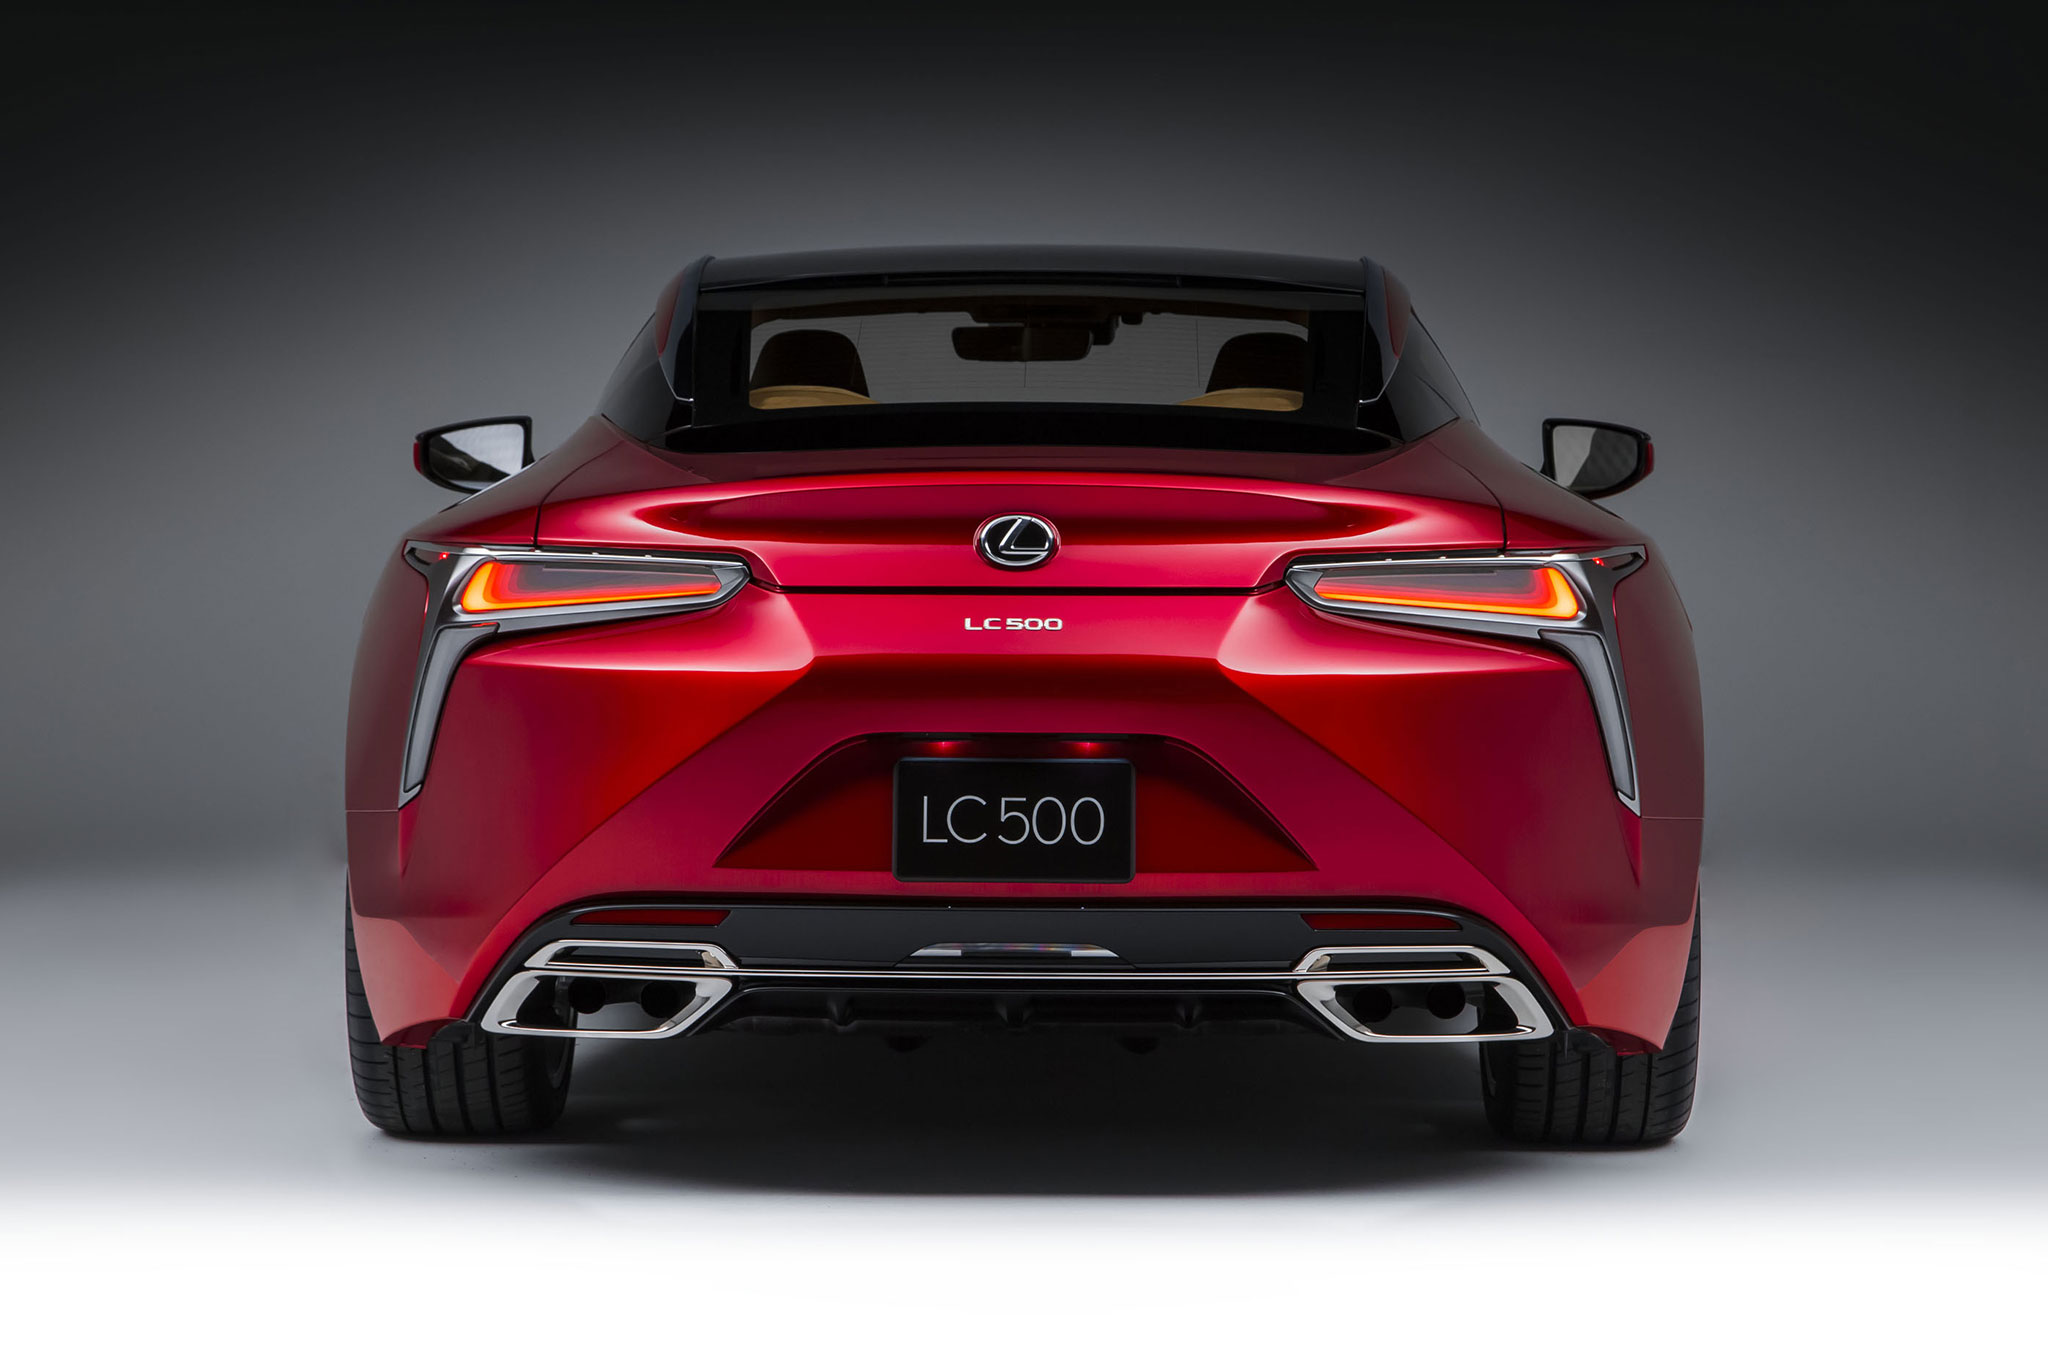 Cheap Car Audio Packages >> 15 Things You Didn't Know About the 2018 Lexus LC 500